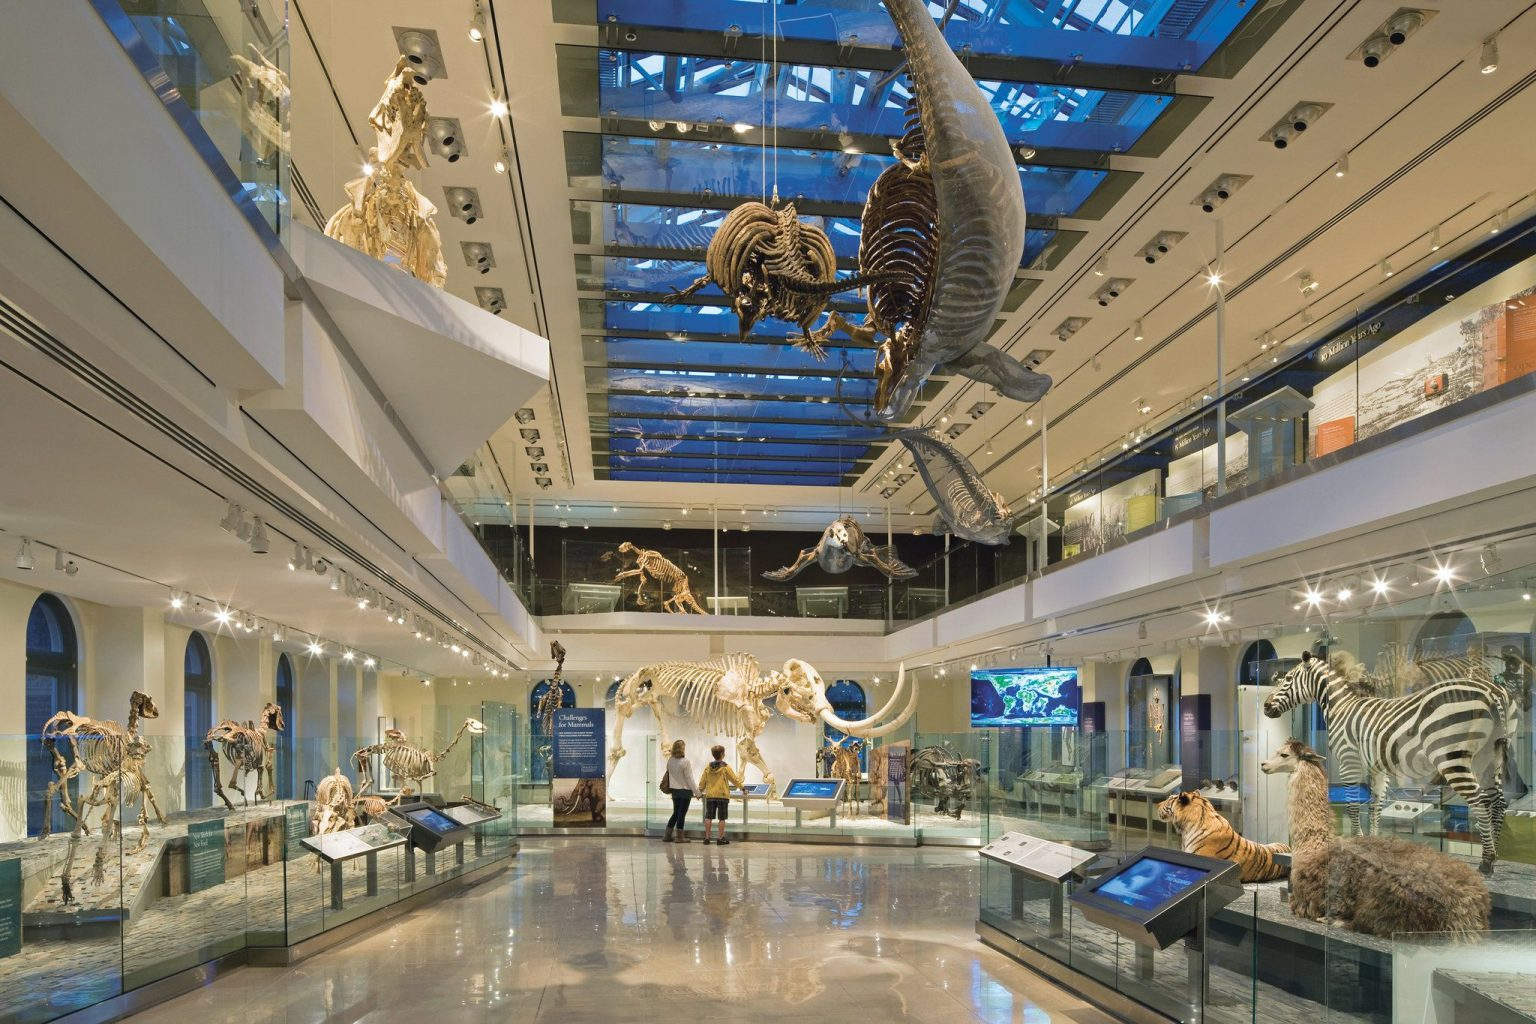 Museum of Natural History in Cleveland